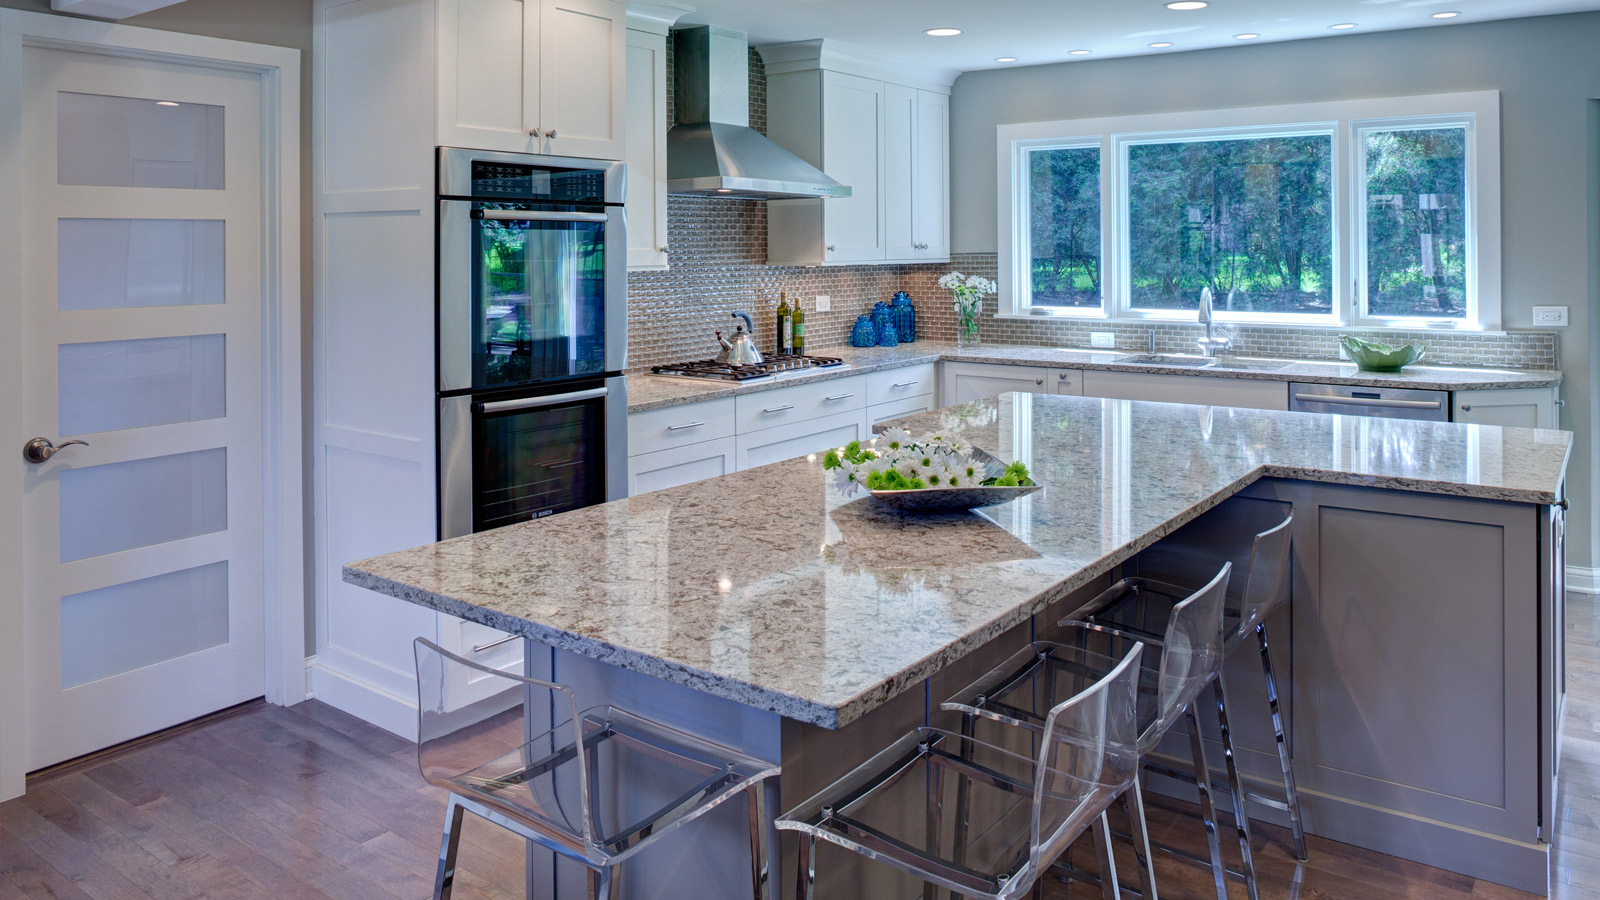 2013 Award-Winning Transitional Kitchen Remodel - Drury Design